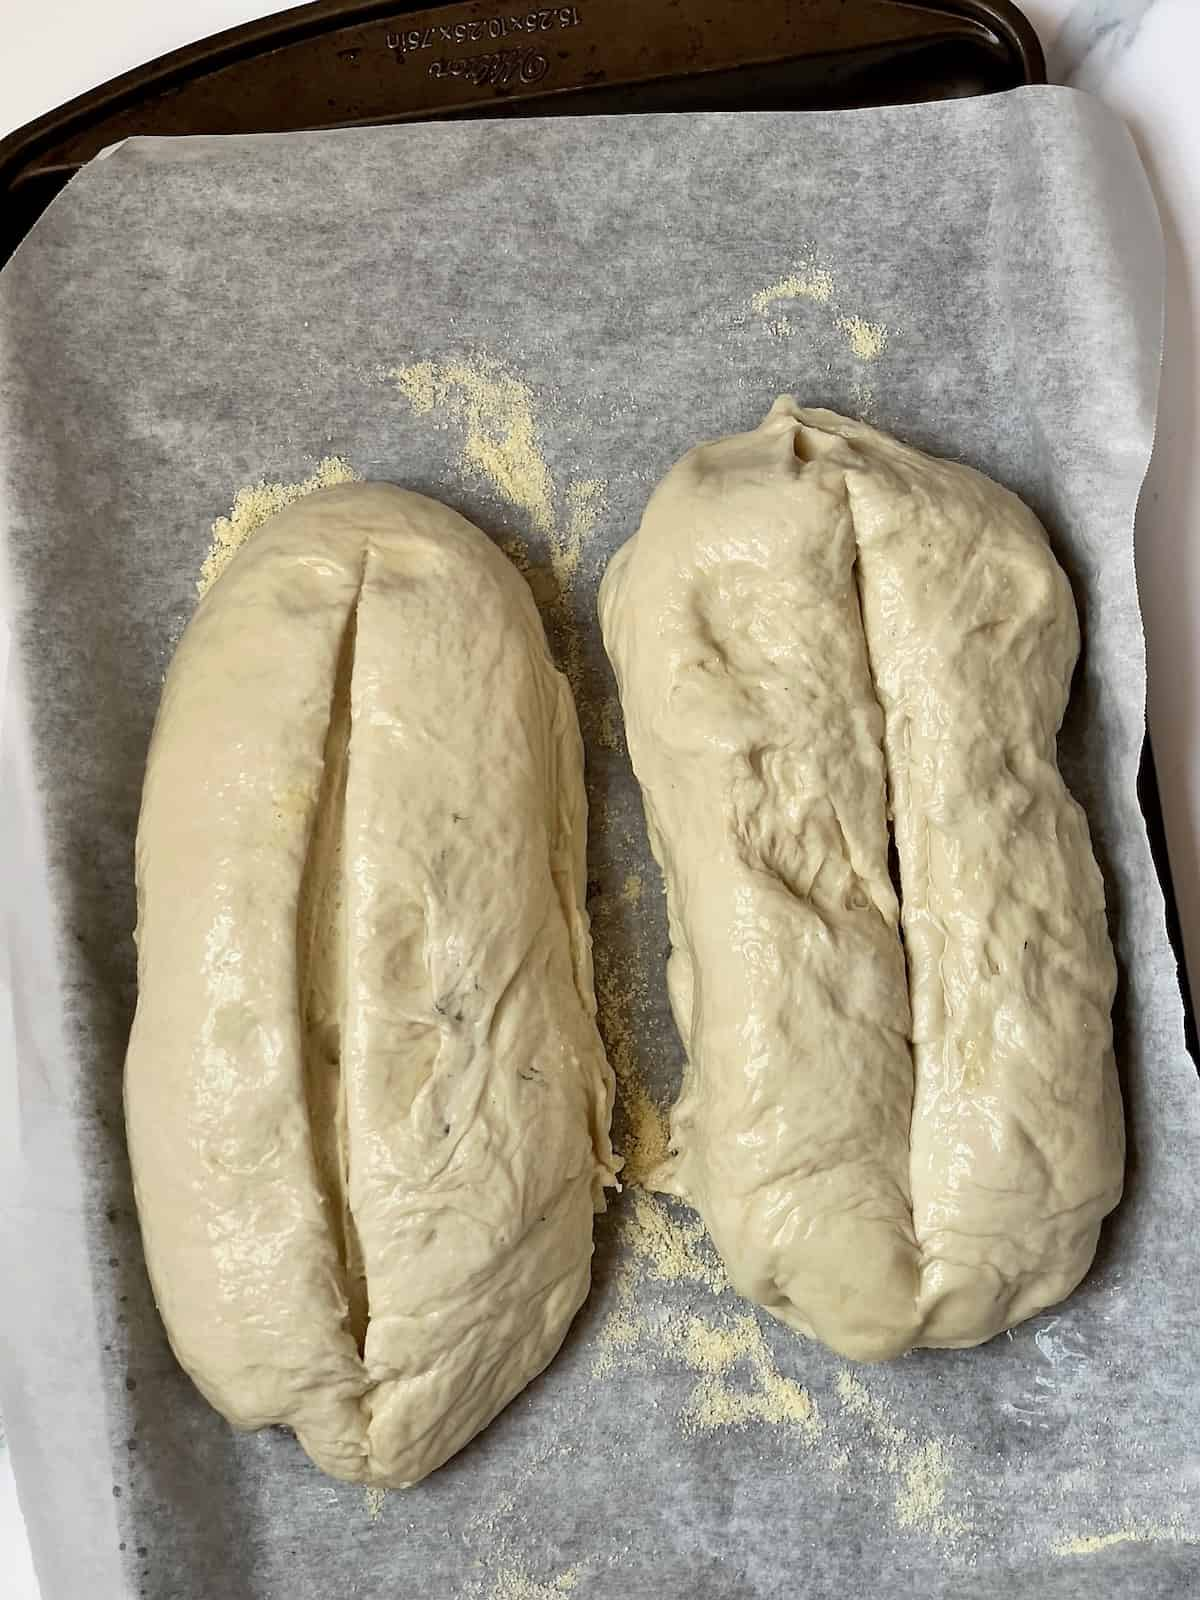 risen dough with a long slice in the top